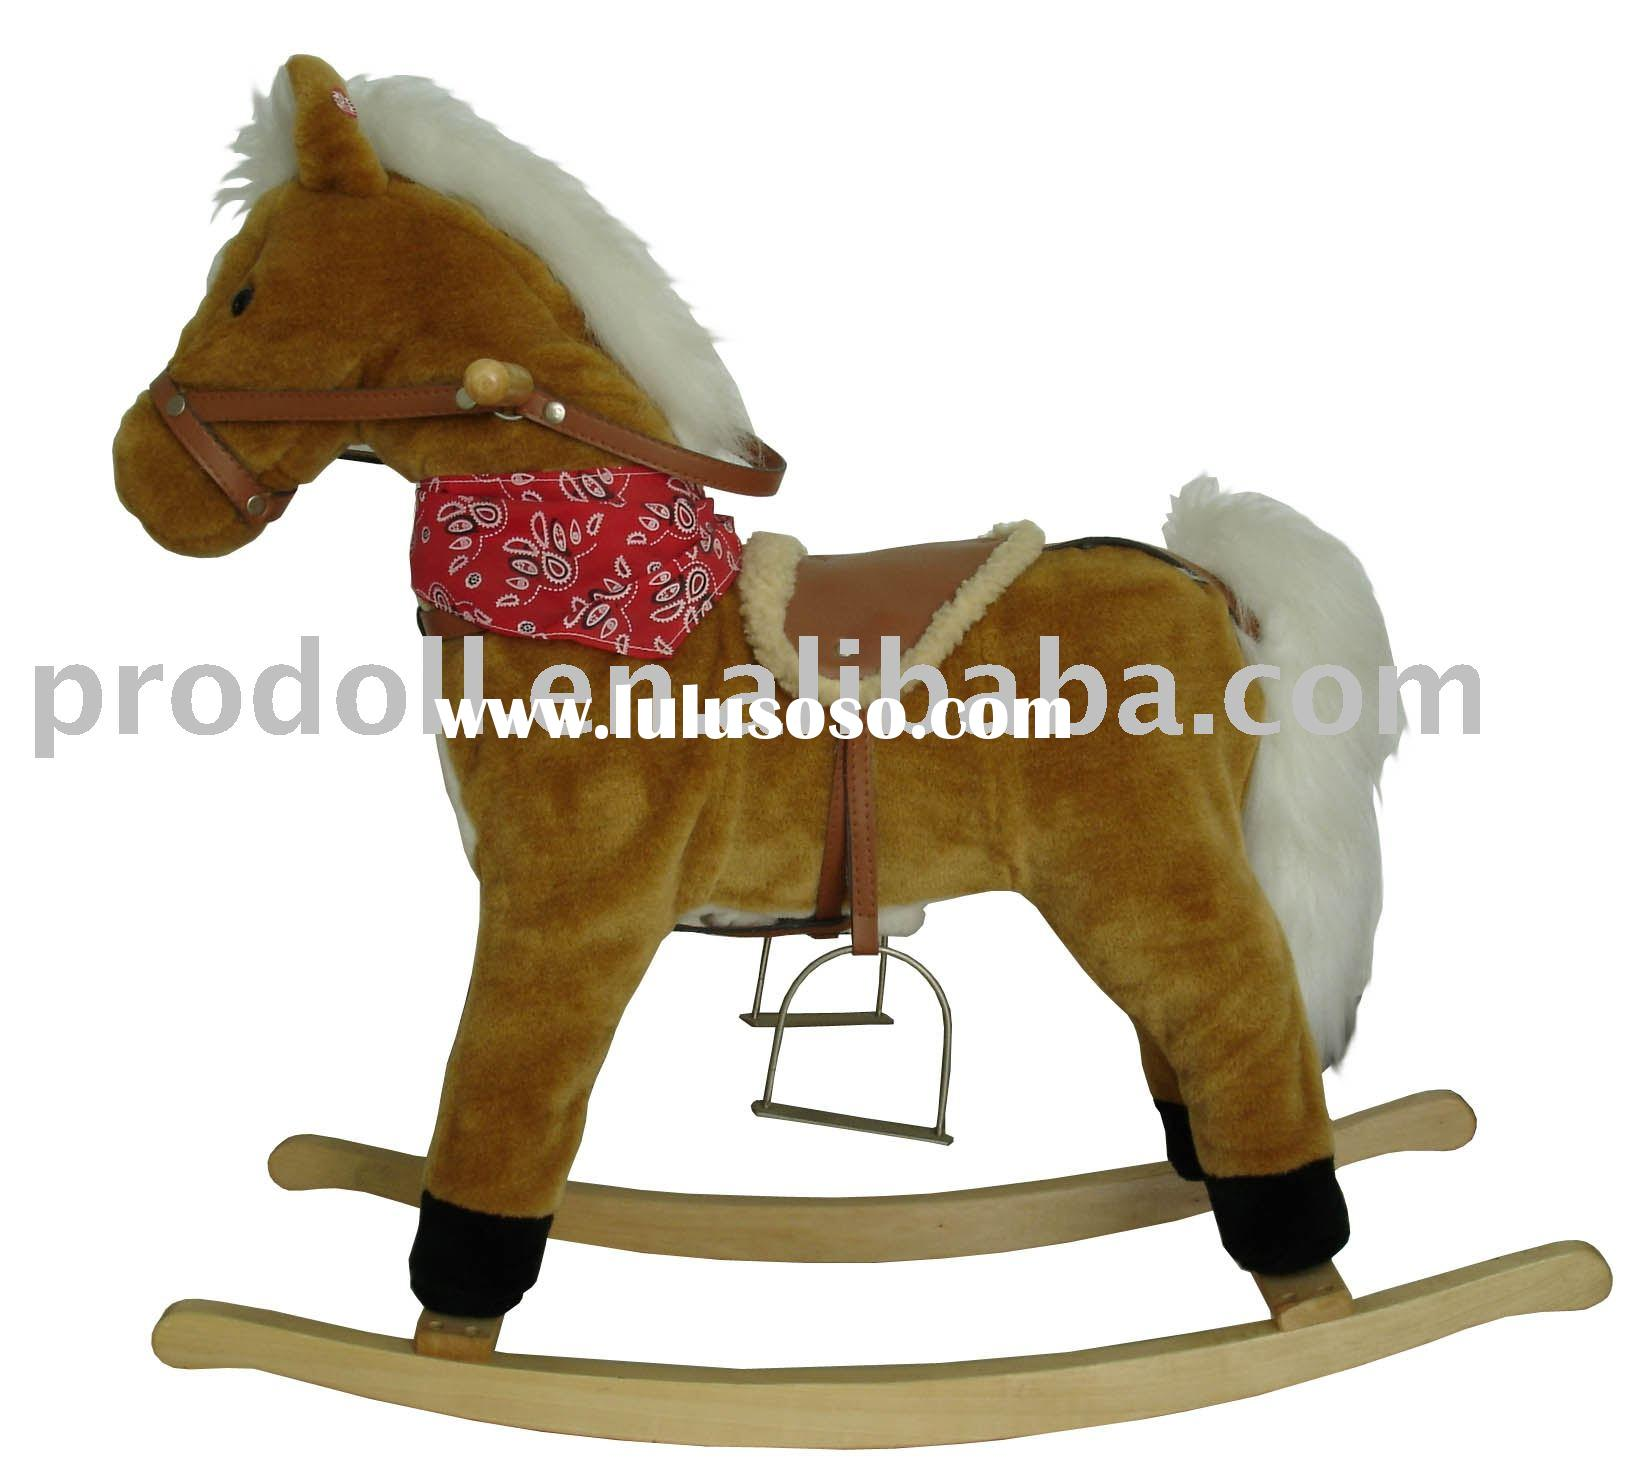 Rocking Horse/Plush Rocking Horse/rocking horses/plush rocker/rocking animal